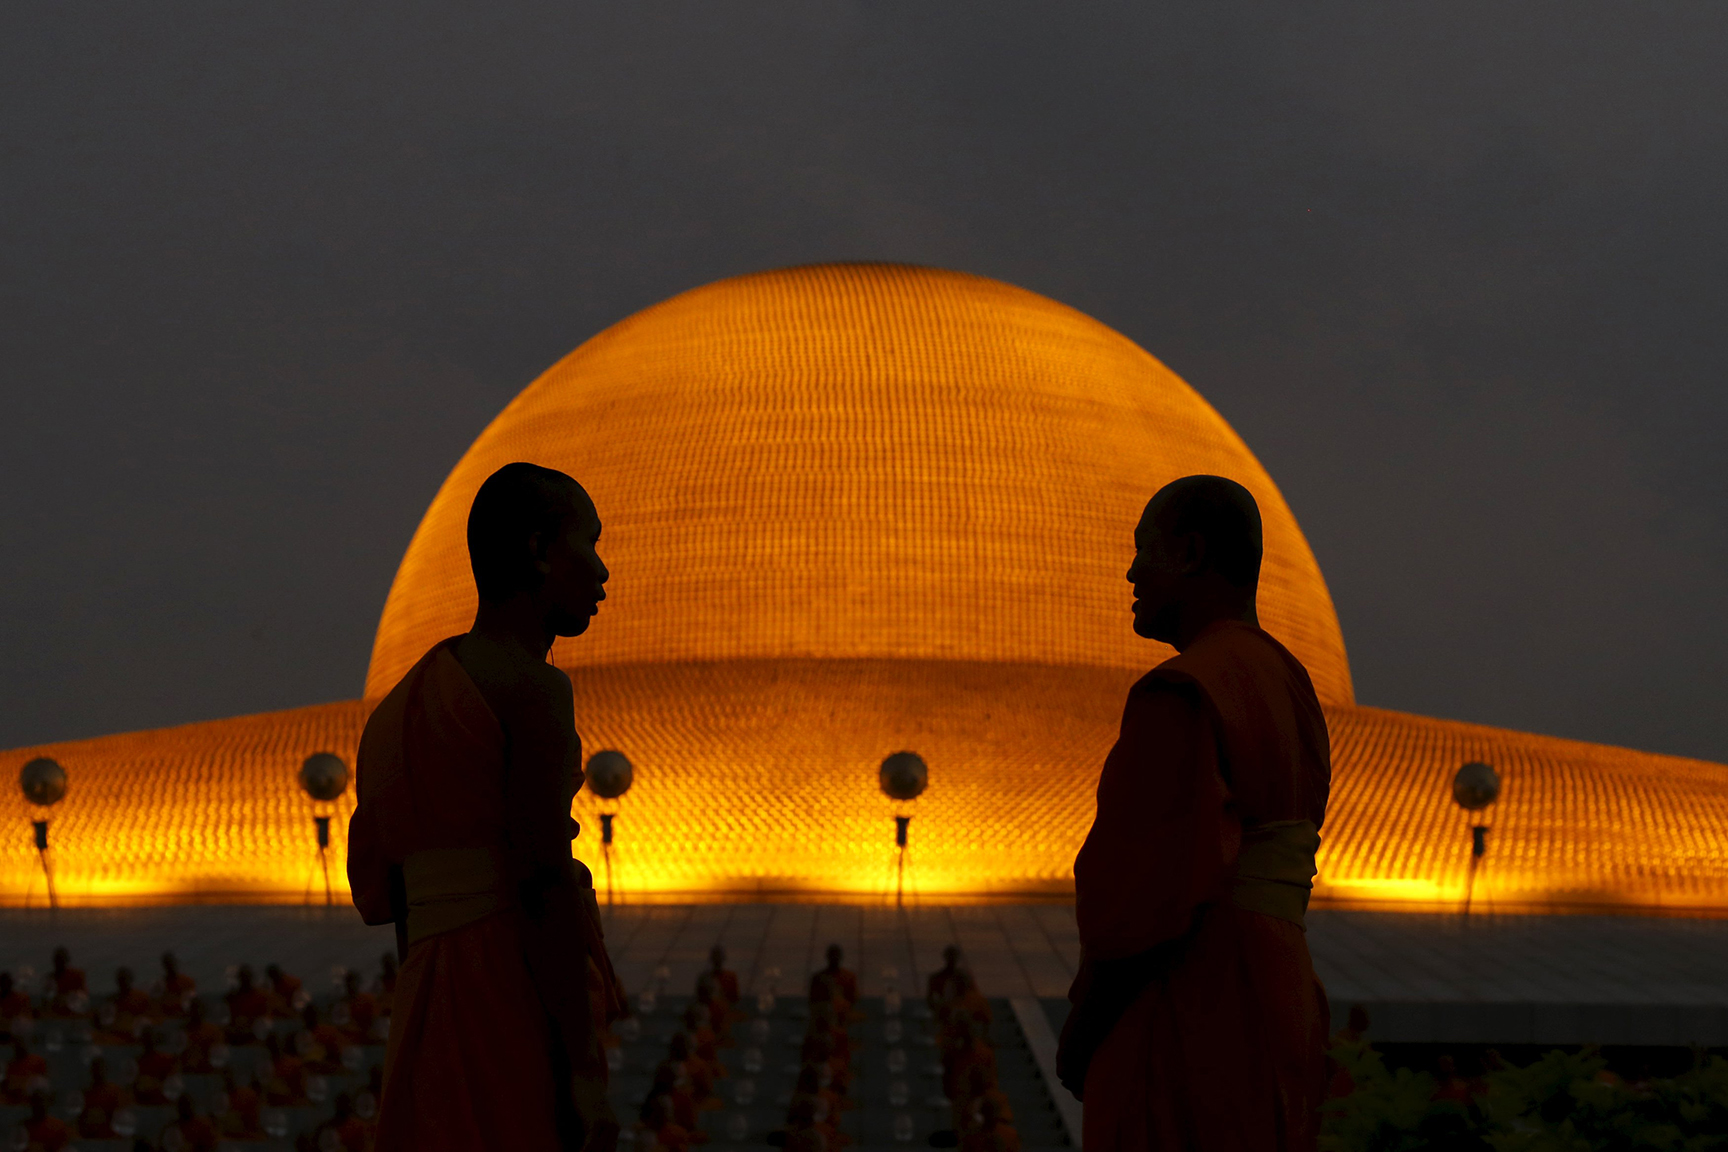 A Buddhist monk stands in front of the Wat Phra Dhammakaya temple in Pathum Thani province, north of Bangkok before a ceremony on Makha Bucha Day